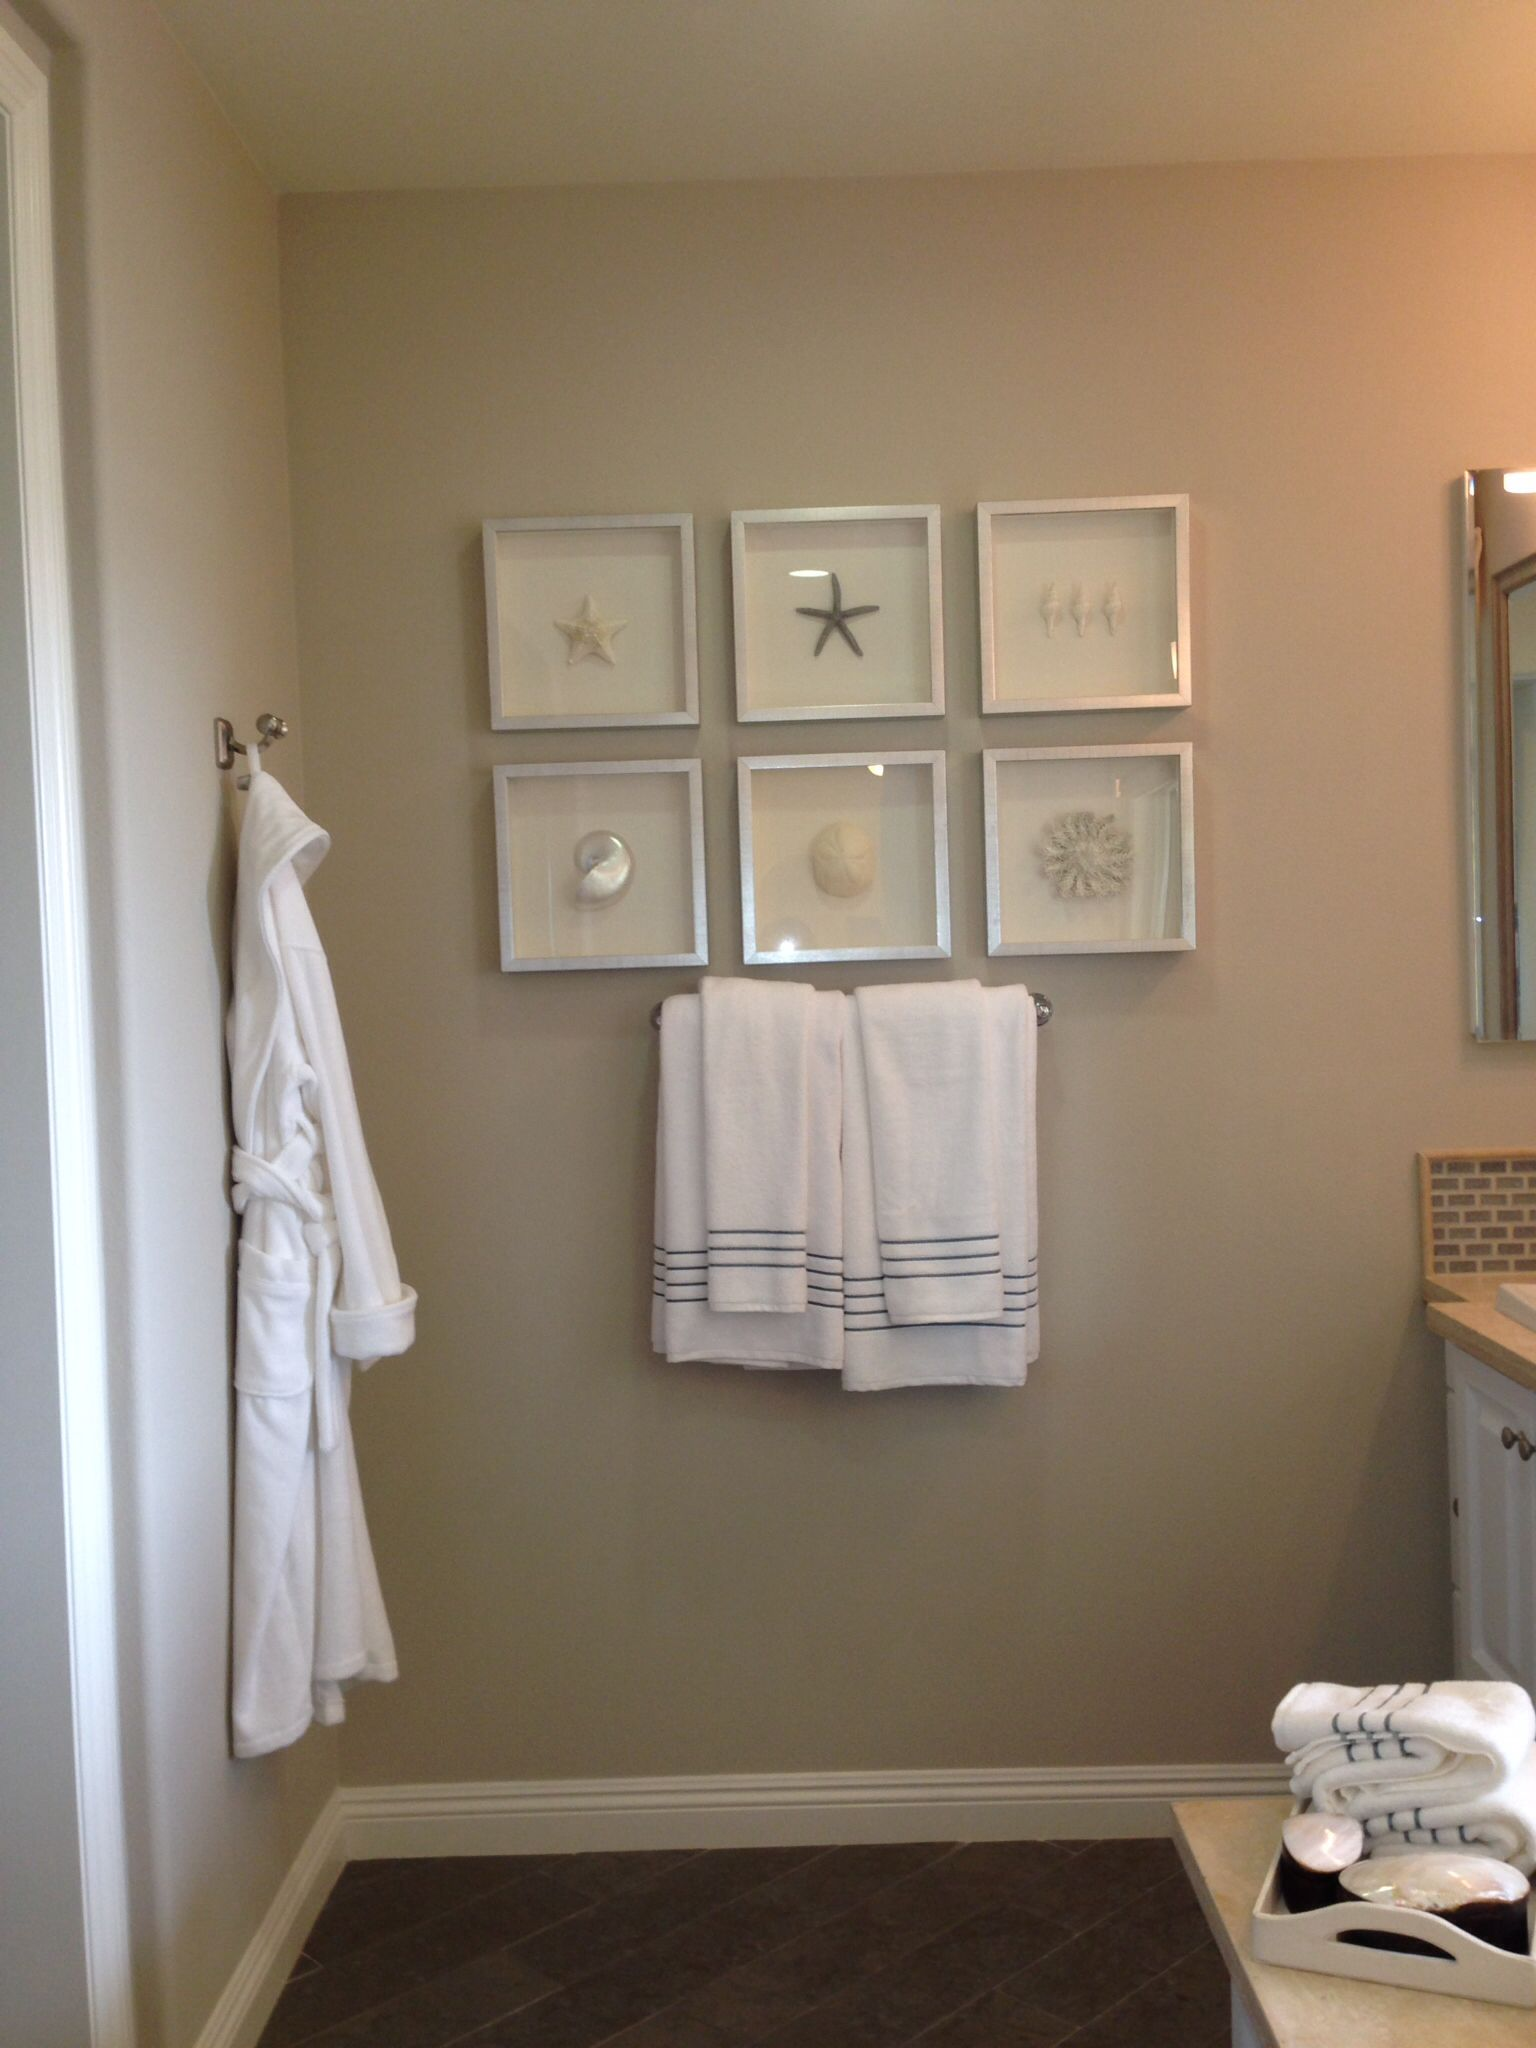 Bathroom beach decor framing ideas model home for Bathroom theme ideas